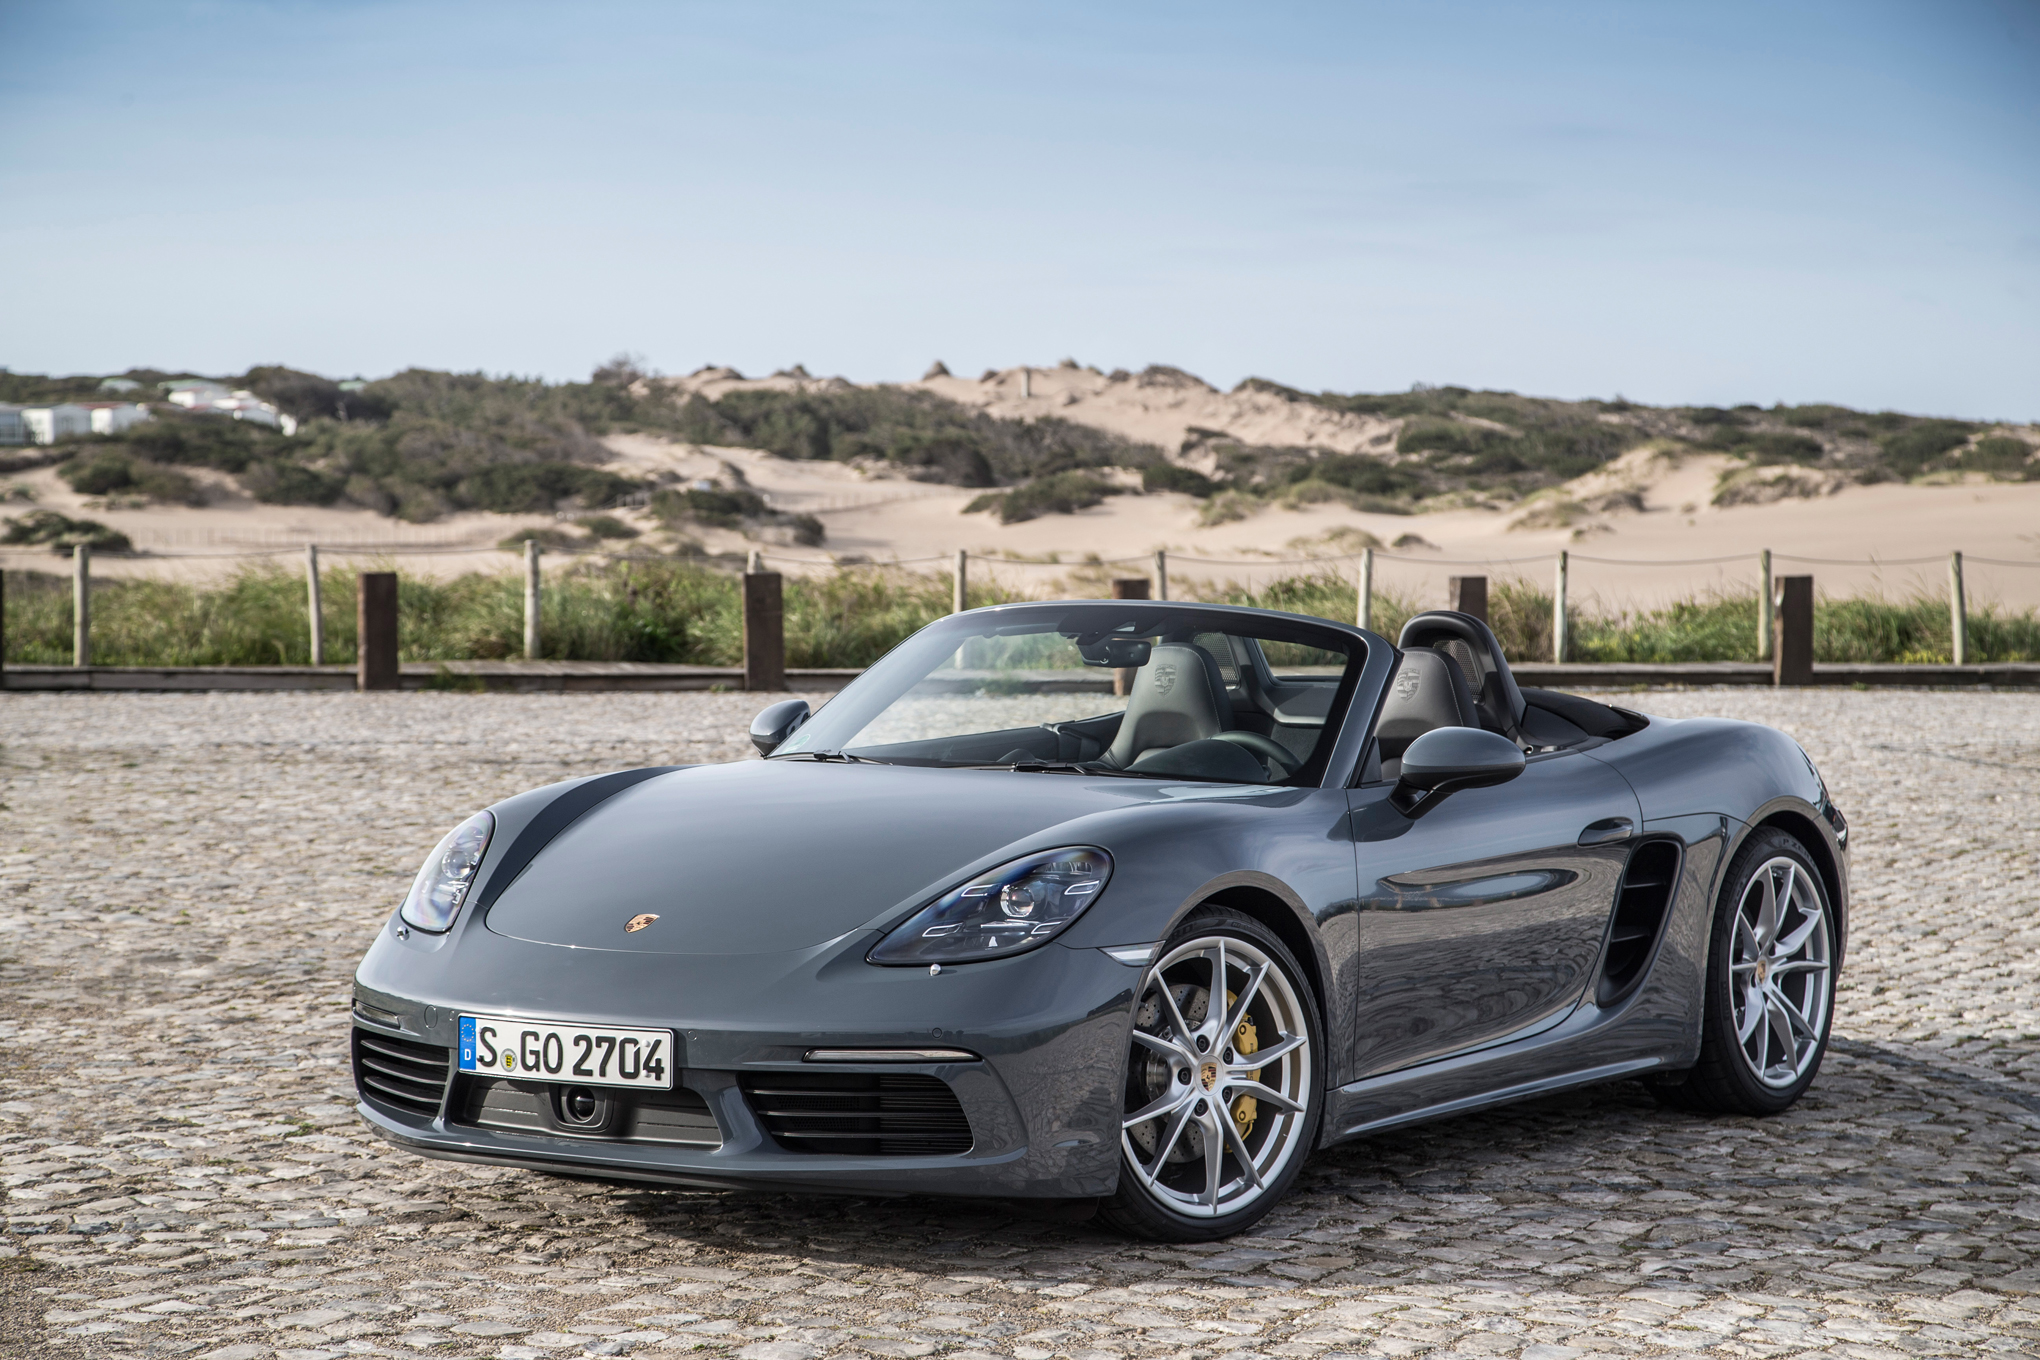 2017 Porsche Boxster 718 Review 10503 Cars Performance Reviews Engine Diagram And Test Drive